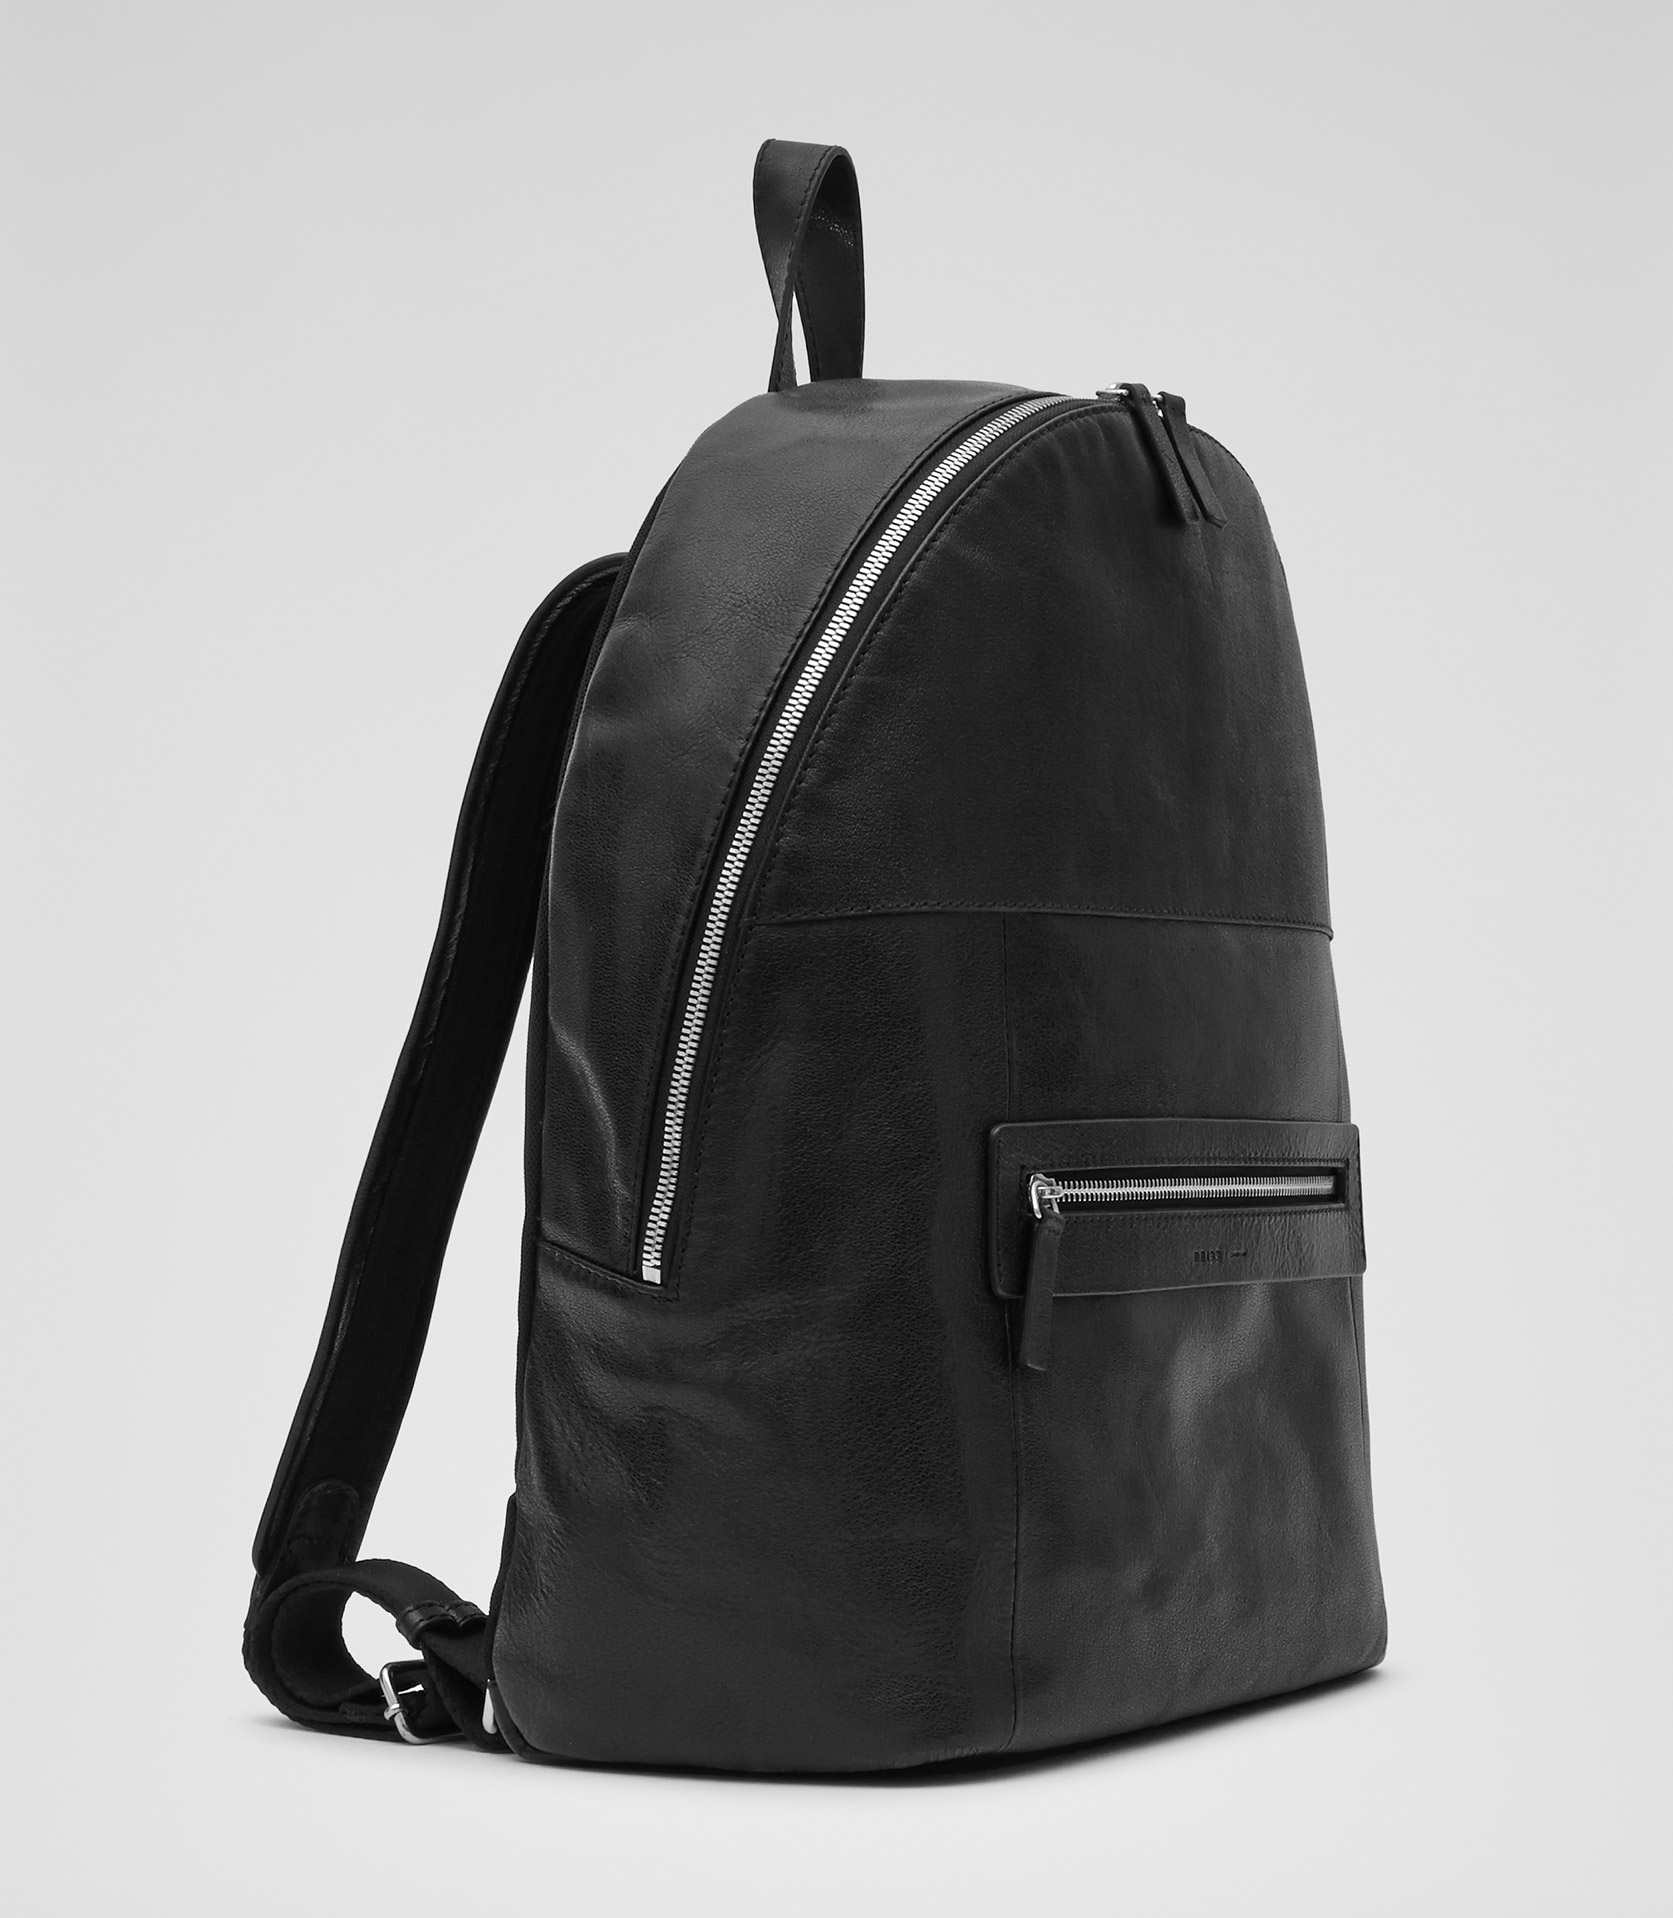 Mens Black Leather Backpack 2I8tVTG3